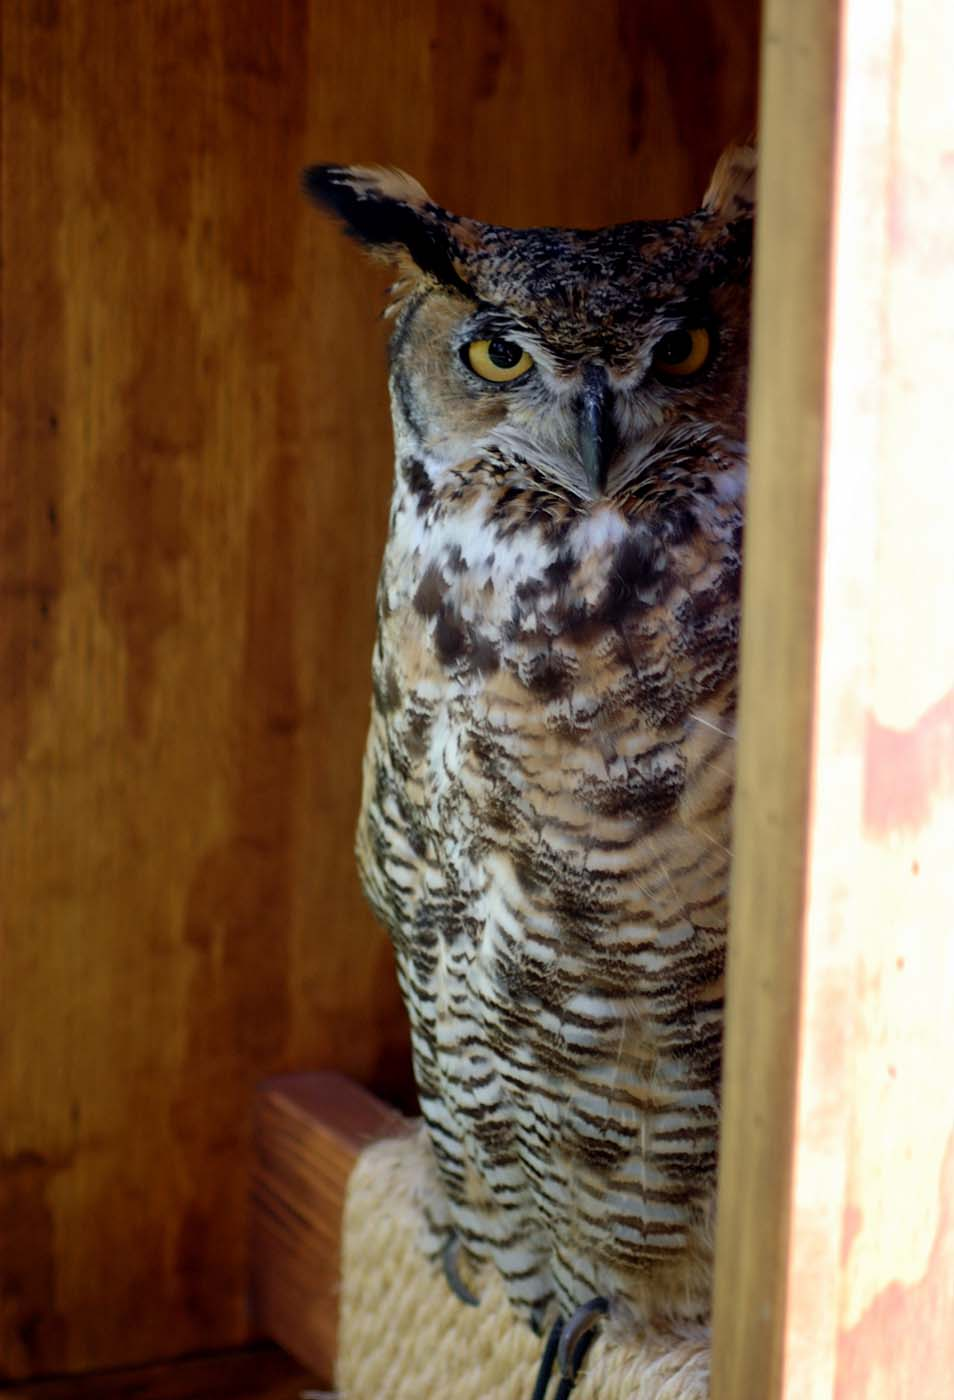 Draper Museum Raptor Experience: Teasdale the great horned owl